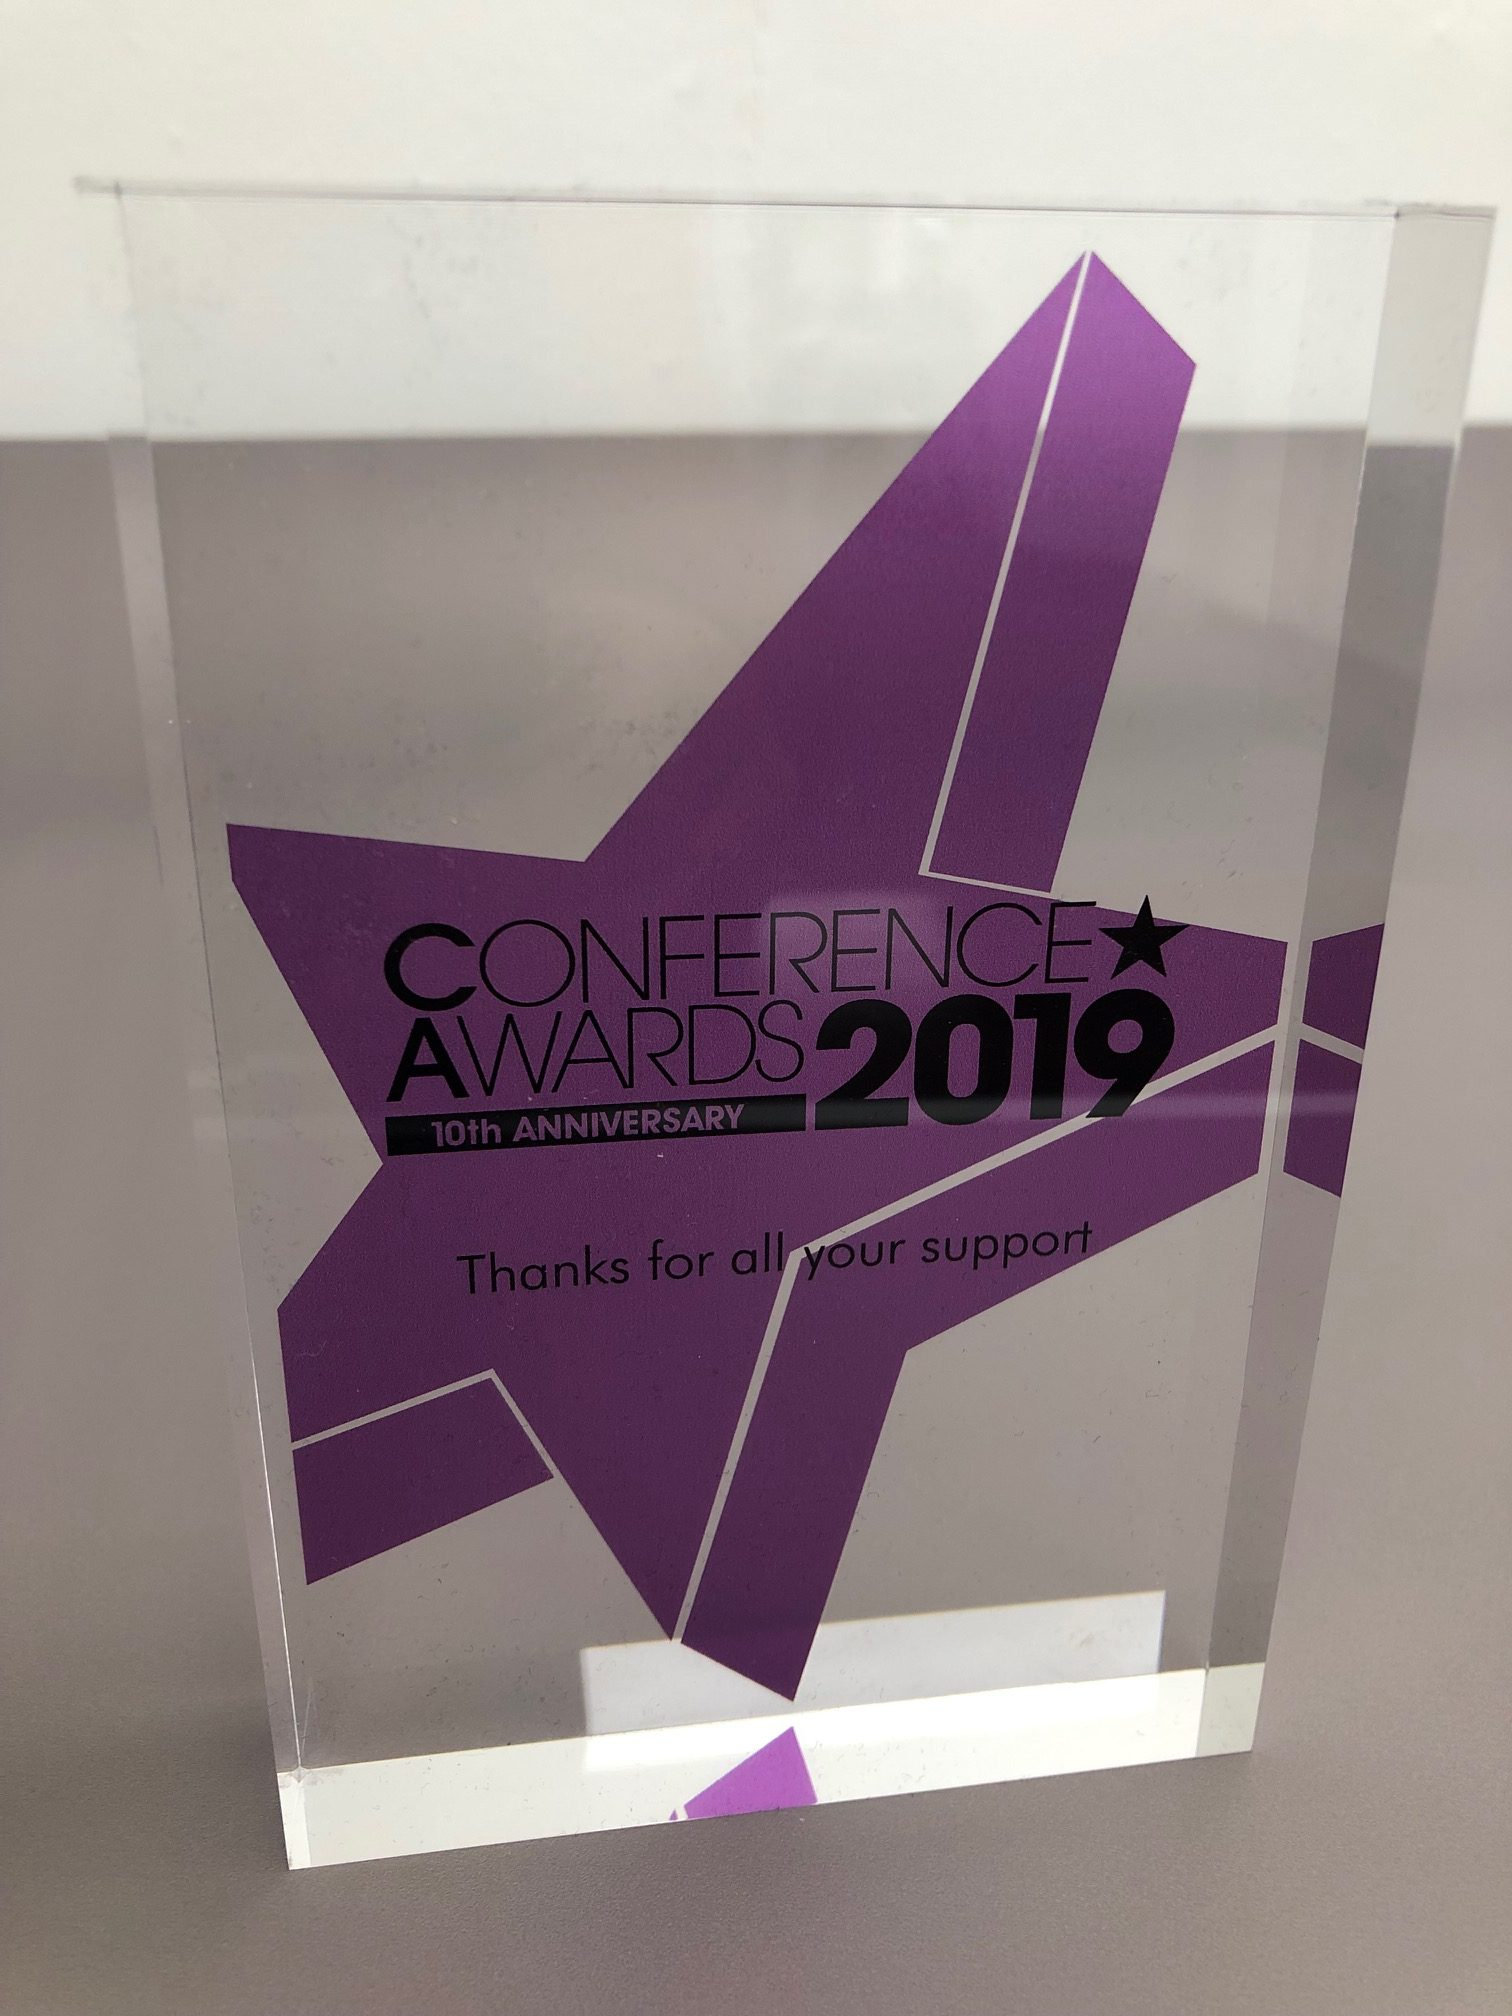 Conference Awards 2019 trophy, awarded to KNP in recognition of 10 years support